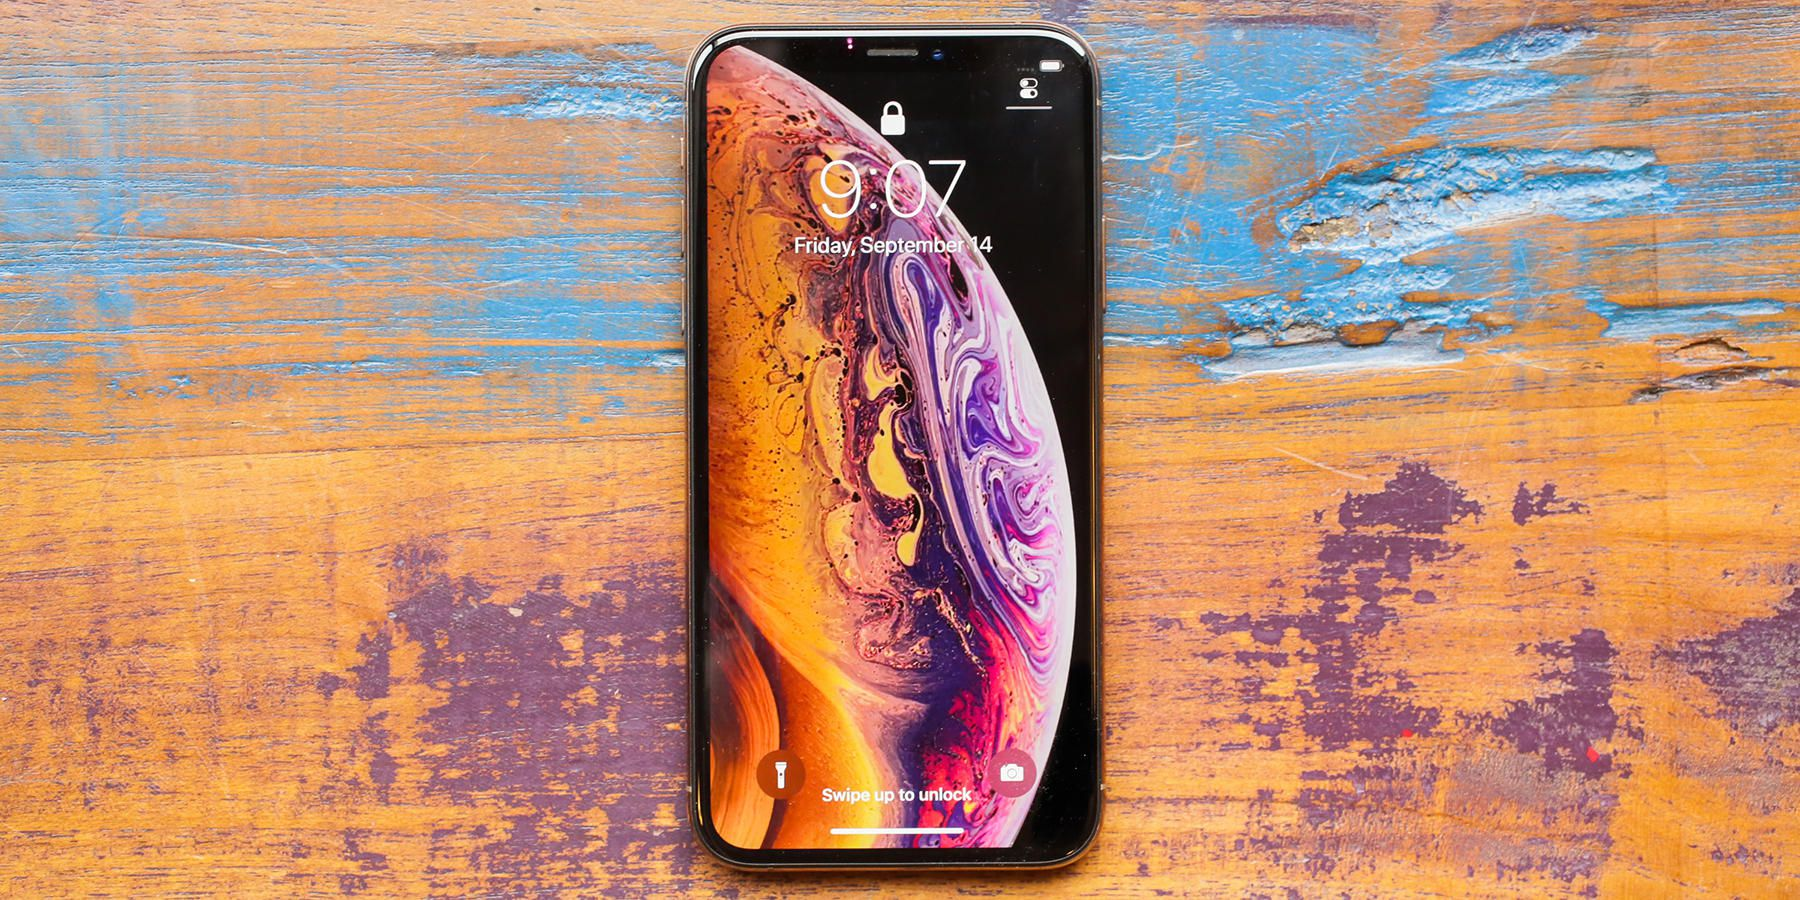 Offerta iPhone XS da 256 GB al minimo storico su Amazon thumbnail